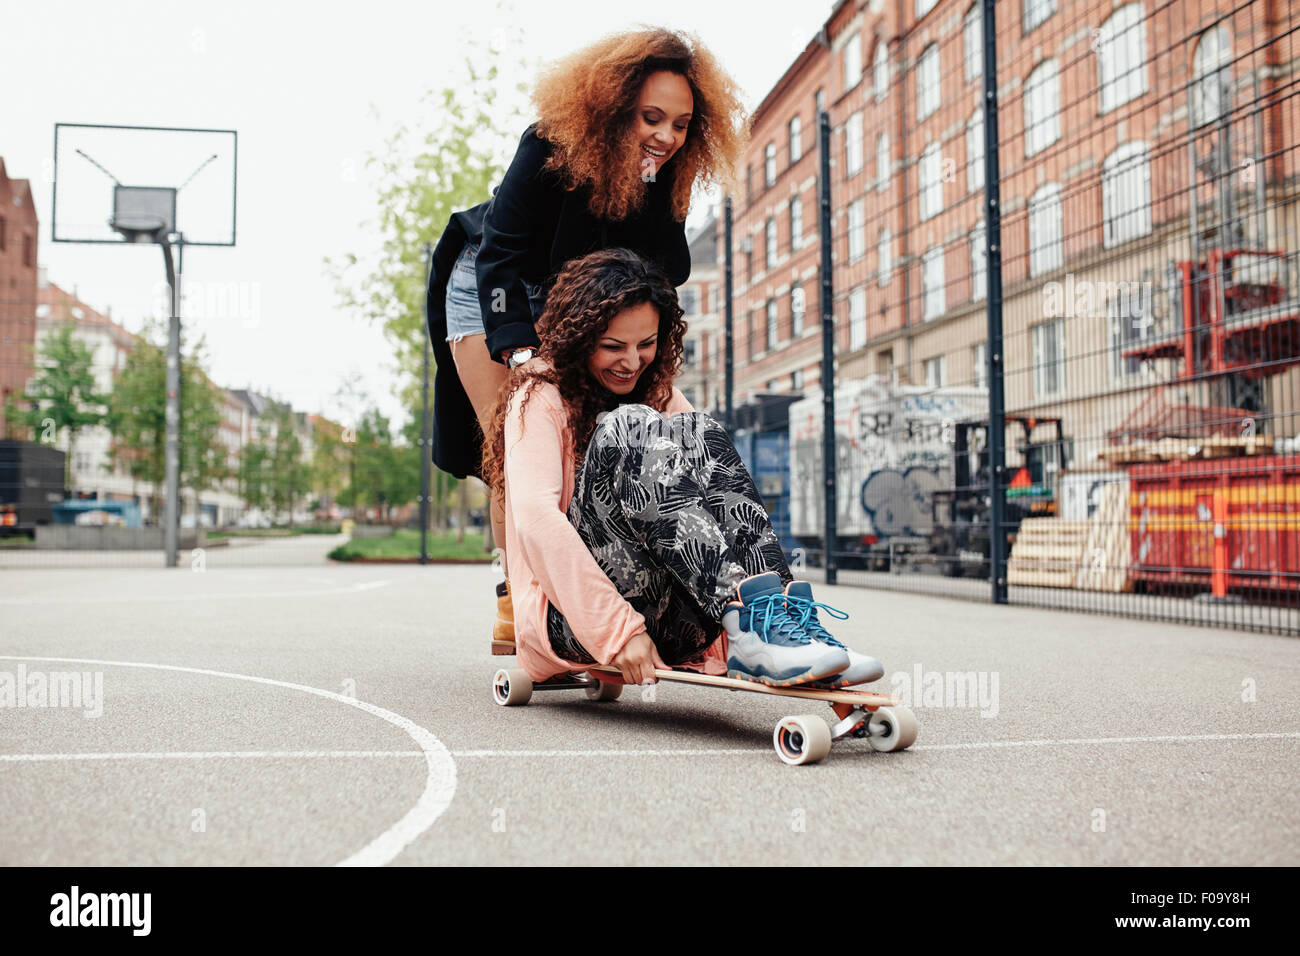 Playful photo of two women outdoors. Young woman sitting on longboard being pushed by her friend along the road. - Stock Image